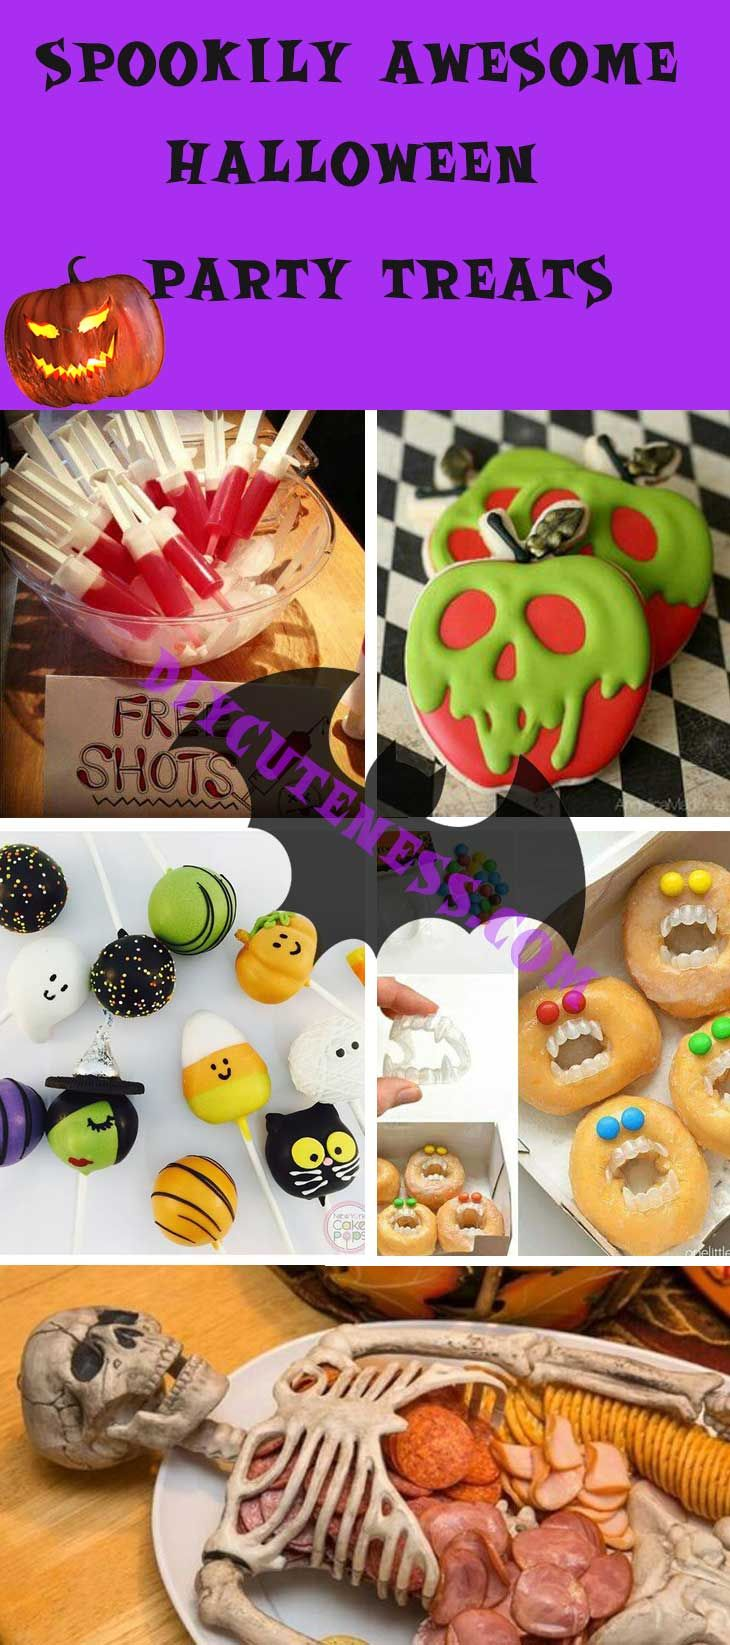 Halloween Themed Birthday Party Food Ideas.Spooky Halloween Party Food Ideas For Adults Halloween Halloween